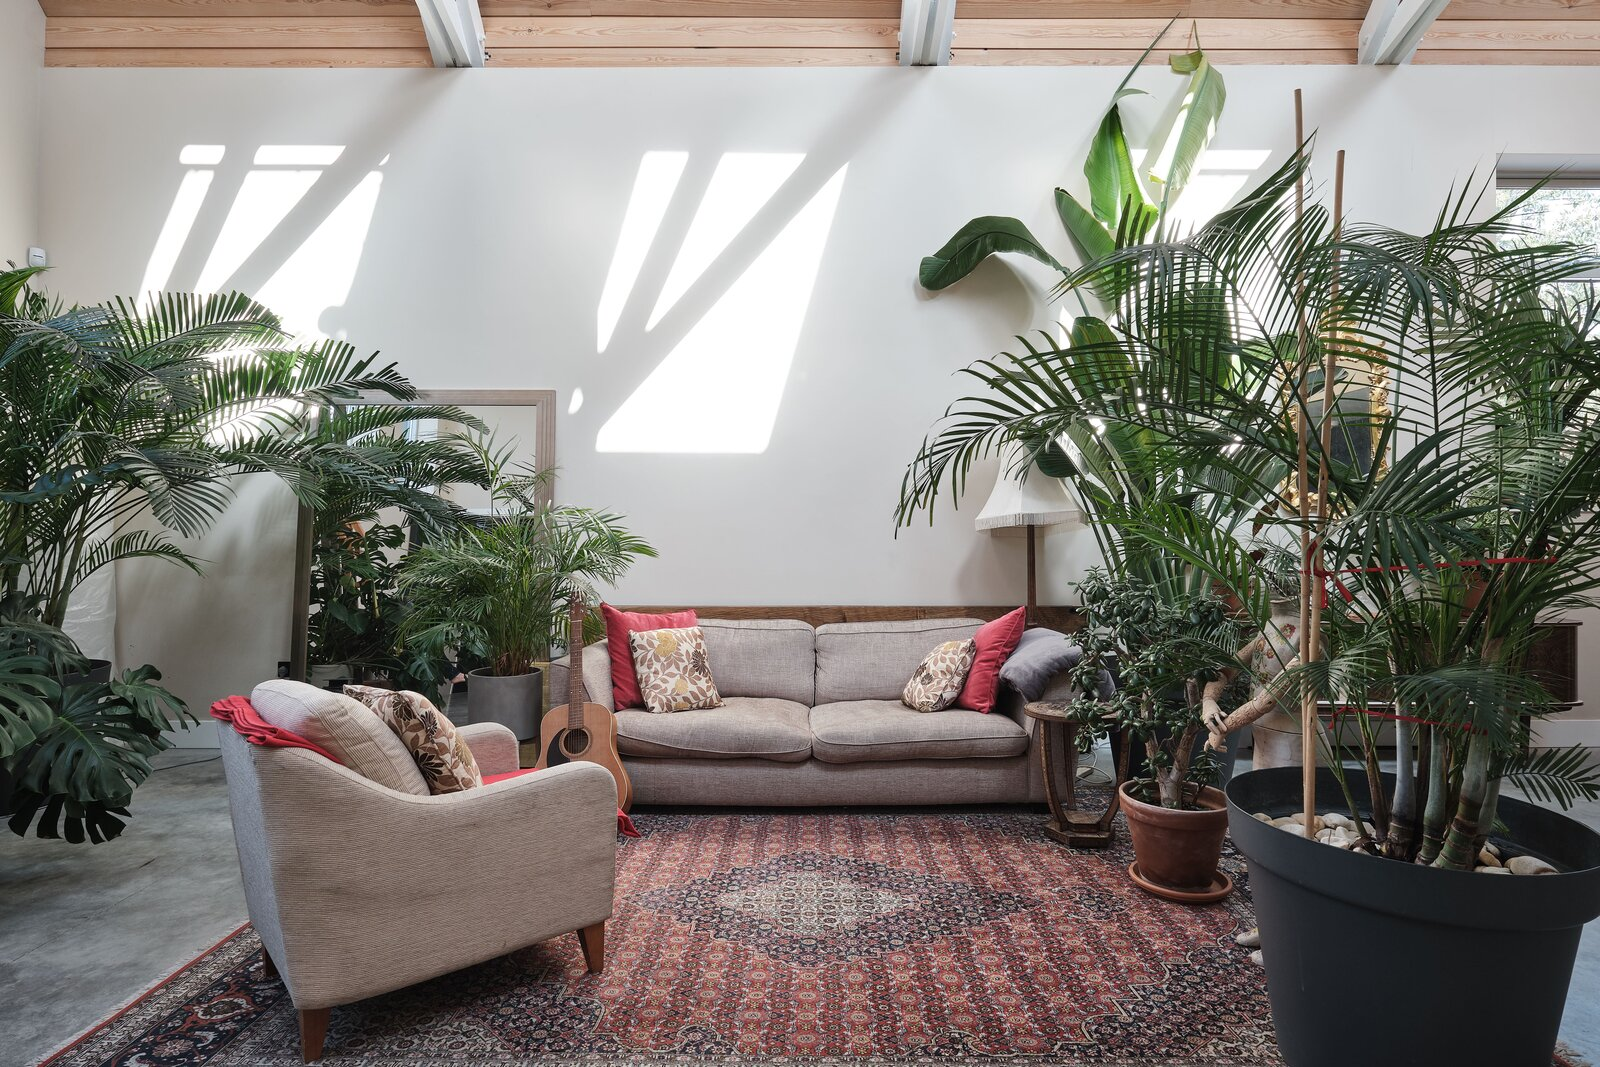 Large potted plants help to divide a seating area.  Photo 3 of 14 in This Former Chapel, Now a Heavenly Artist's Studio and Home, Lists for £1.6M